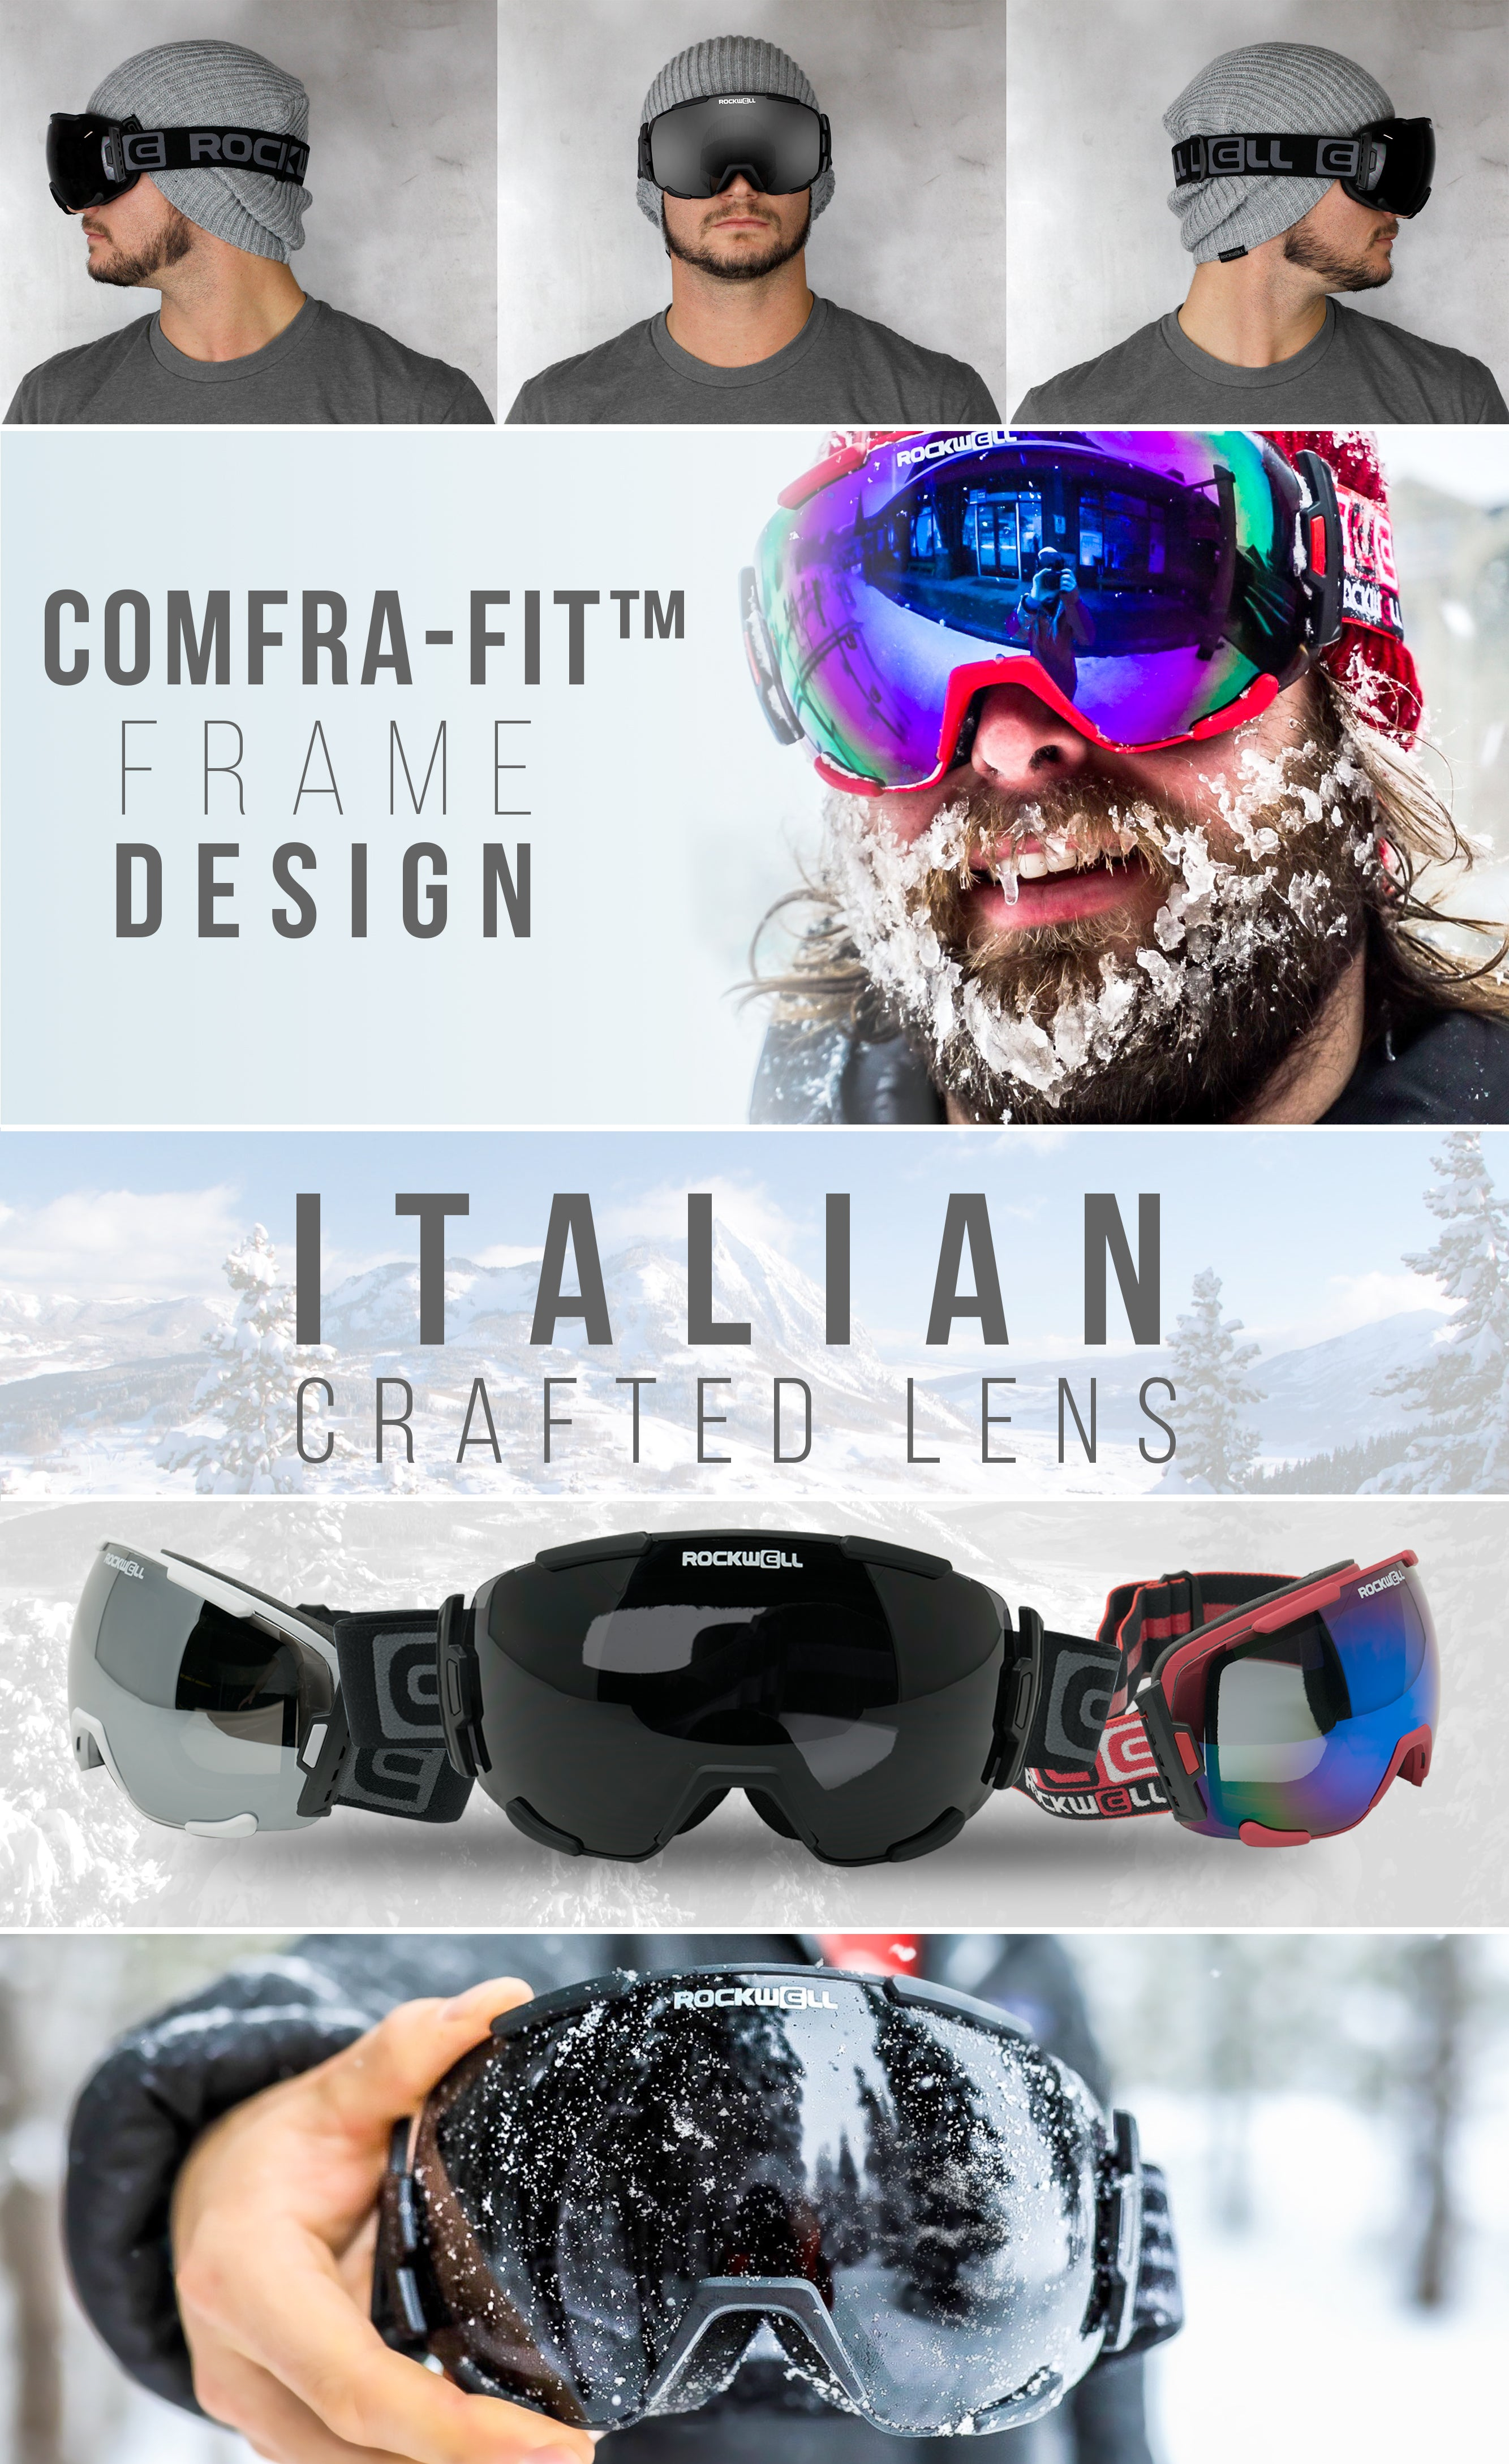 Guy Wearing Bomber Snow goggles and Italian Crafted lens